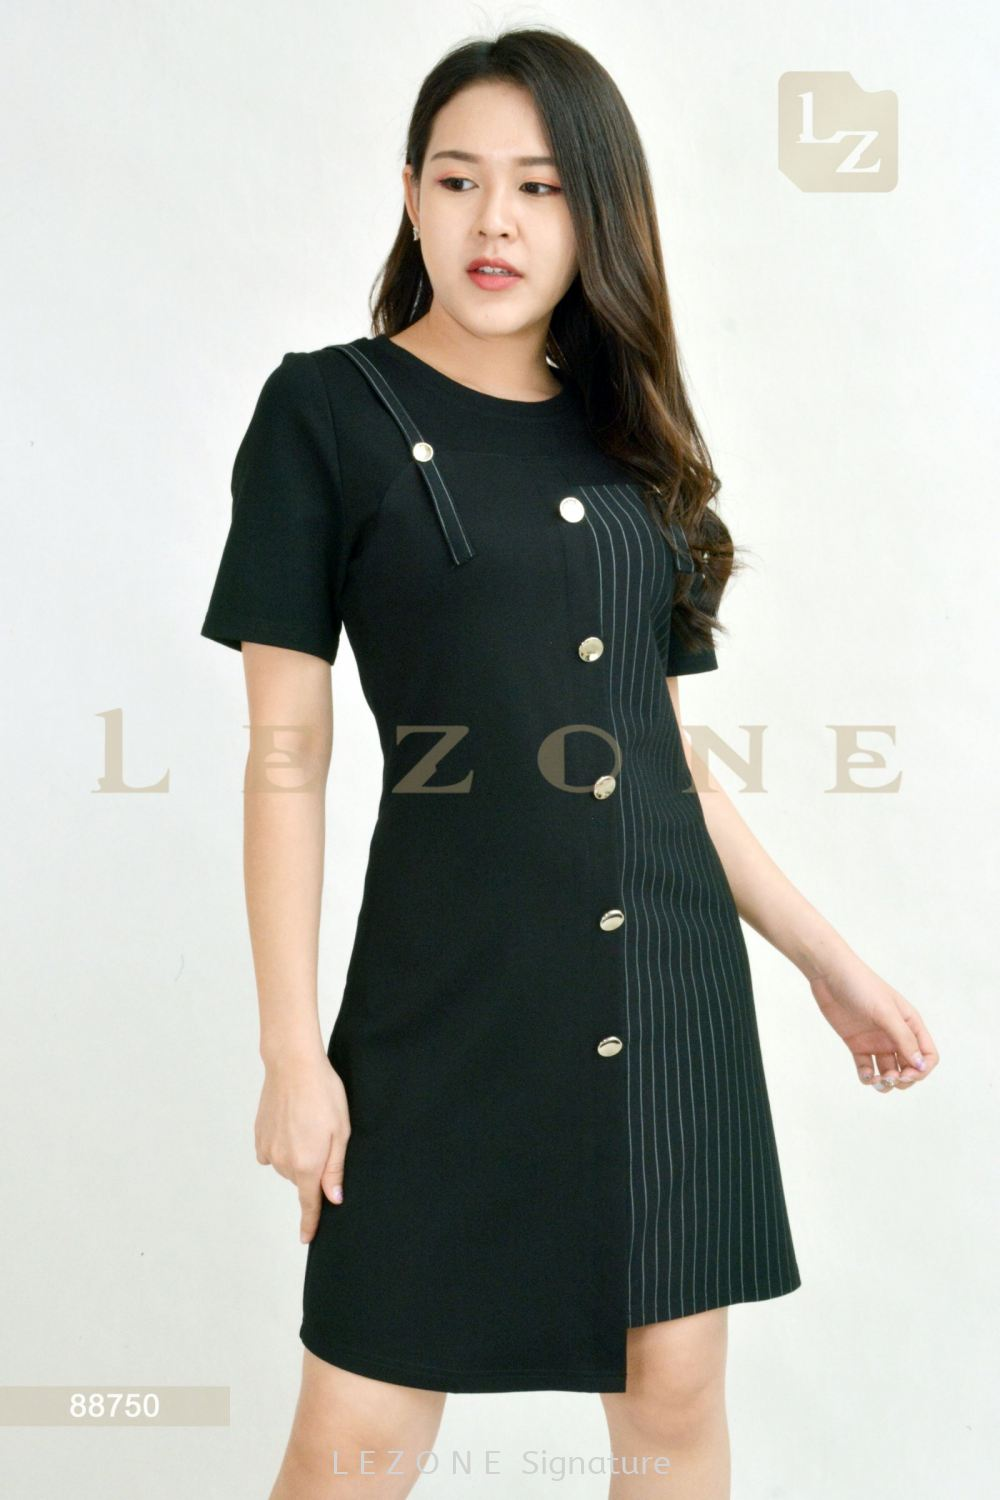 88750 STRIPED BUTTON DETAIL DRESS Sleeved Dresses D R E S S Selangor, Kuala Lumpur (KL), Malaysia, Serdang, Puchong, Cheras Supplier, Suppliers, Supply, Supplies | LE ZONE Signature